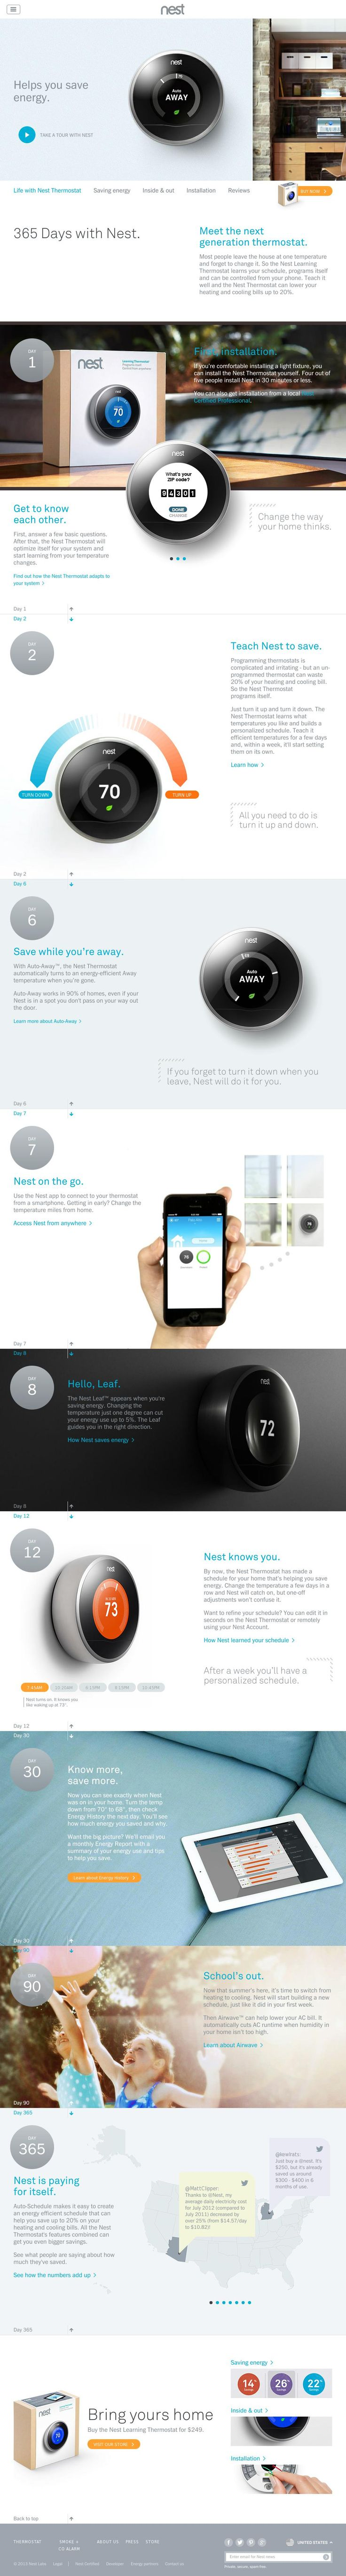 The website 'http://nest.com/thermostat/life-with-nest-thermostat/' courtesy of @Pinstamatic (http://pinstamatic.com)